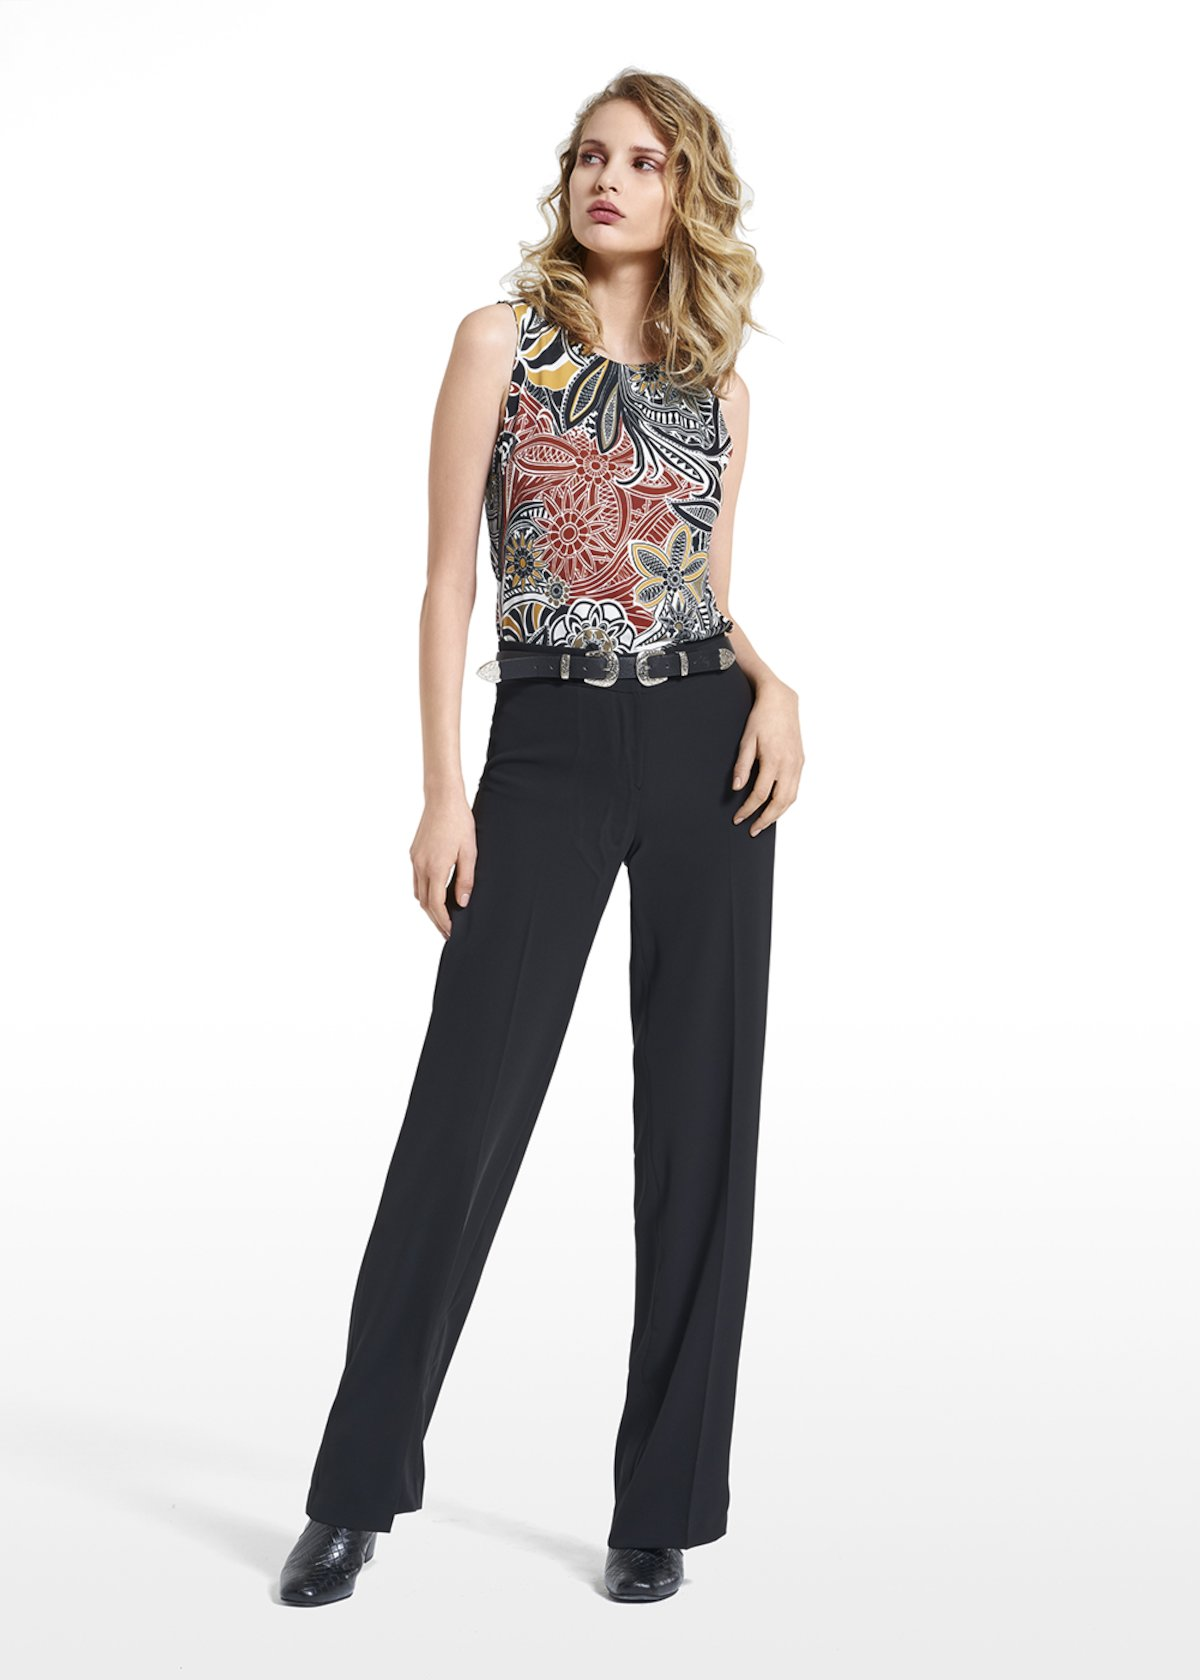 Pants Priamo in cady crêpe fabric with cuff at the bottom - Black - Woman